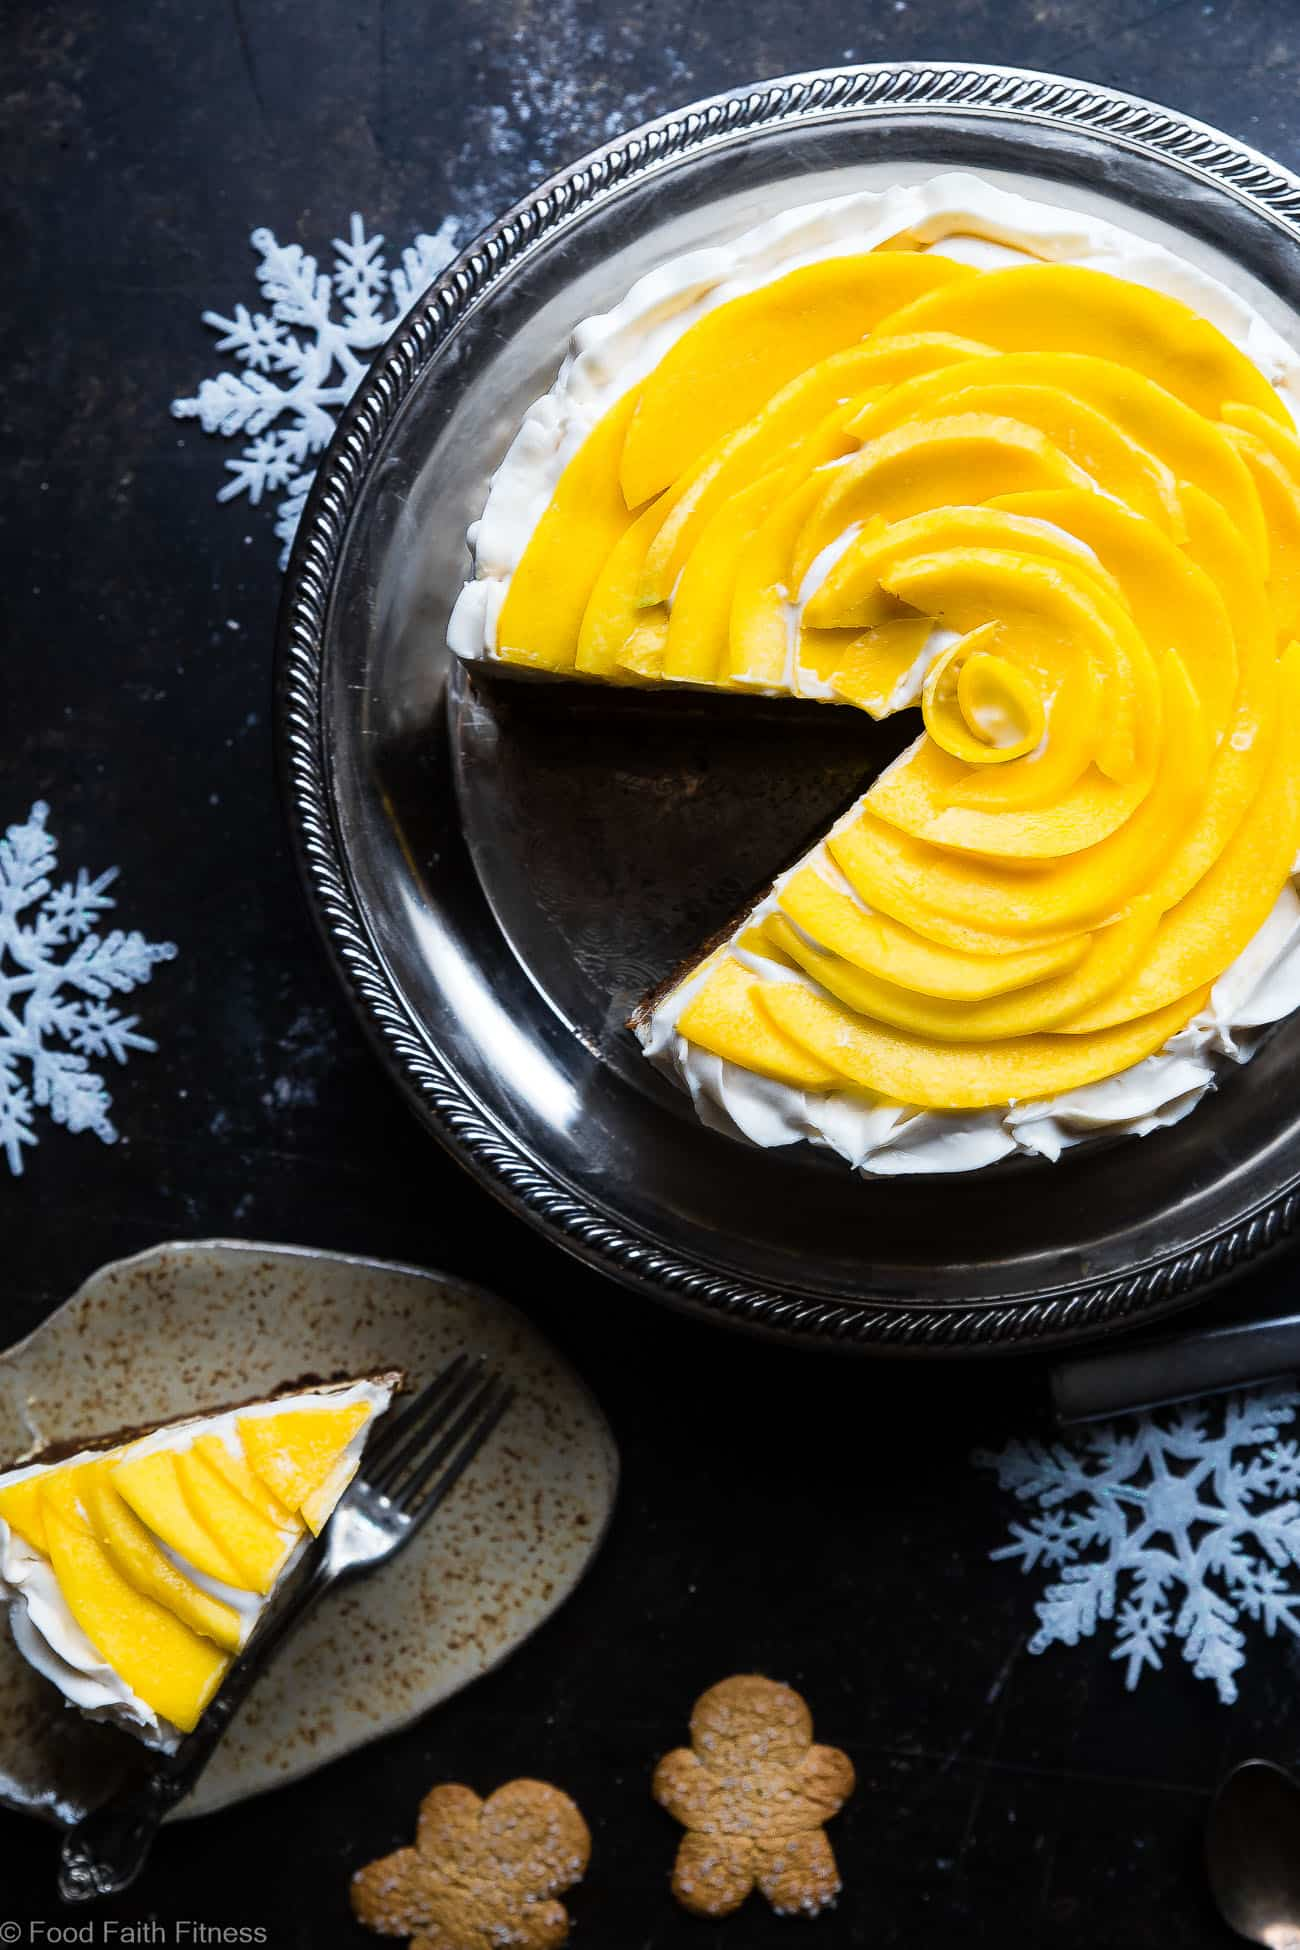 Gluten Free Mango Gingerbread Cake with Coconut Cream - This spicy-sweet, show stopping gluten free gingerbread cake is studded with juicy, fresh mangoes to create a healthy, paleo-friendly, festive dessert for the Holidays! | Foodfaithfitness.com | @FoodFaithFit